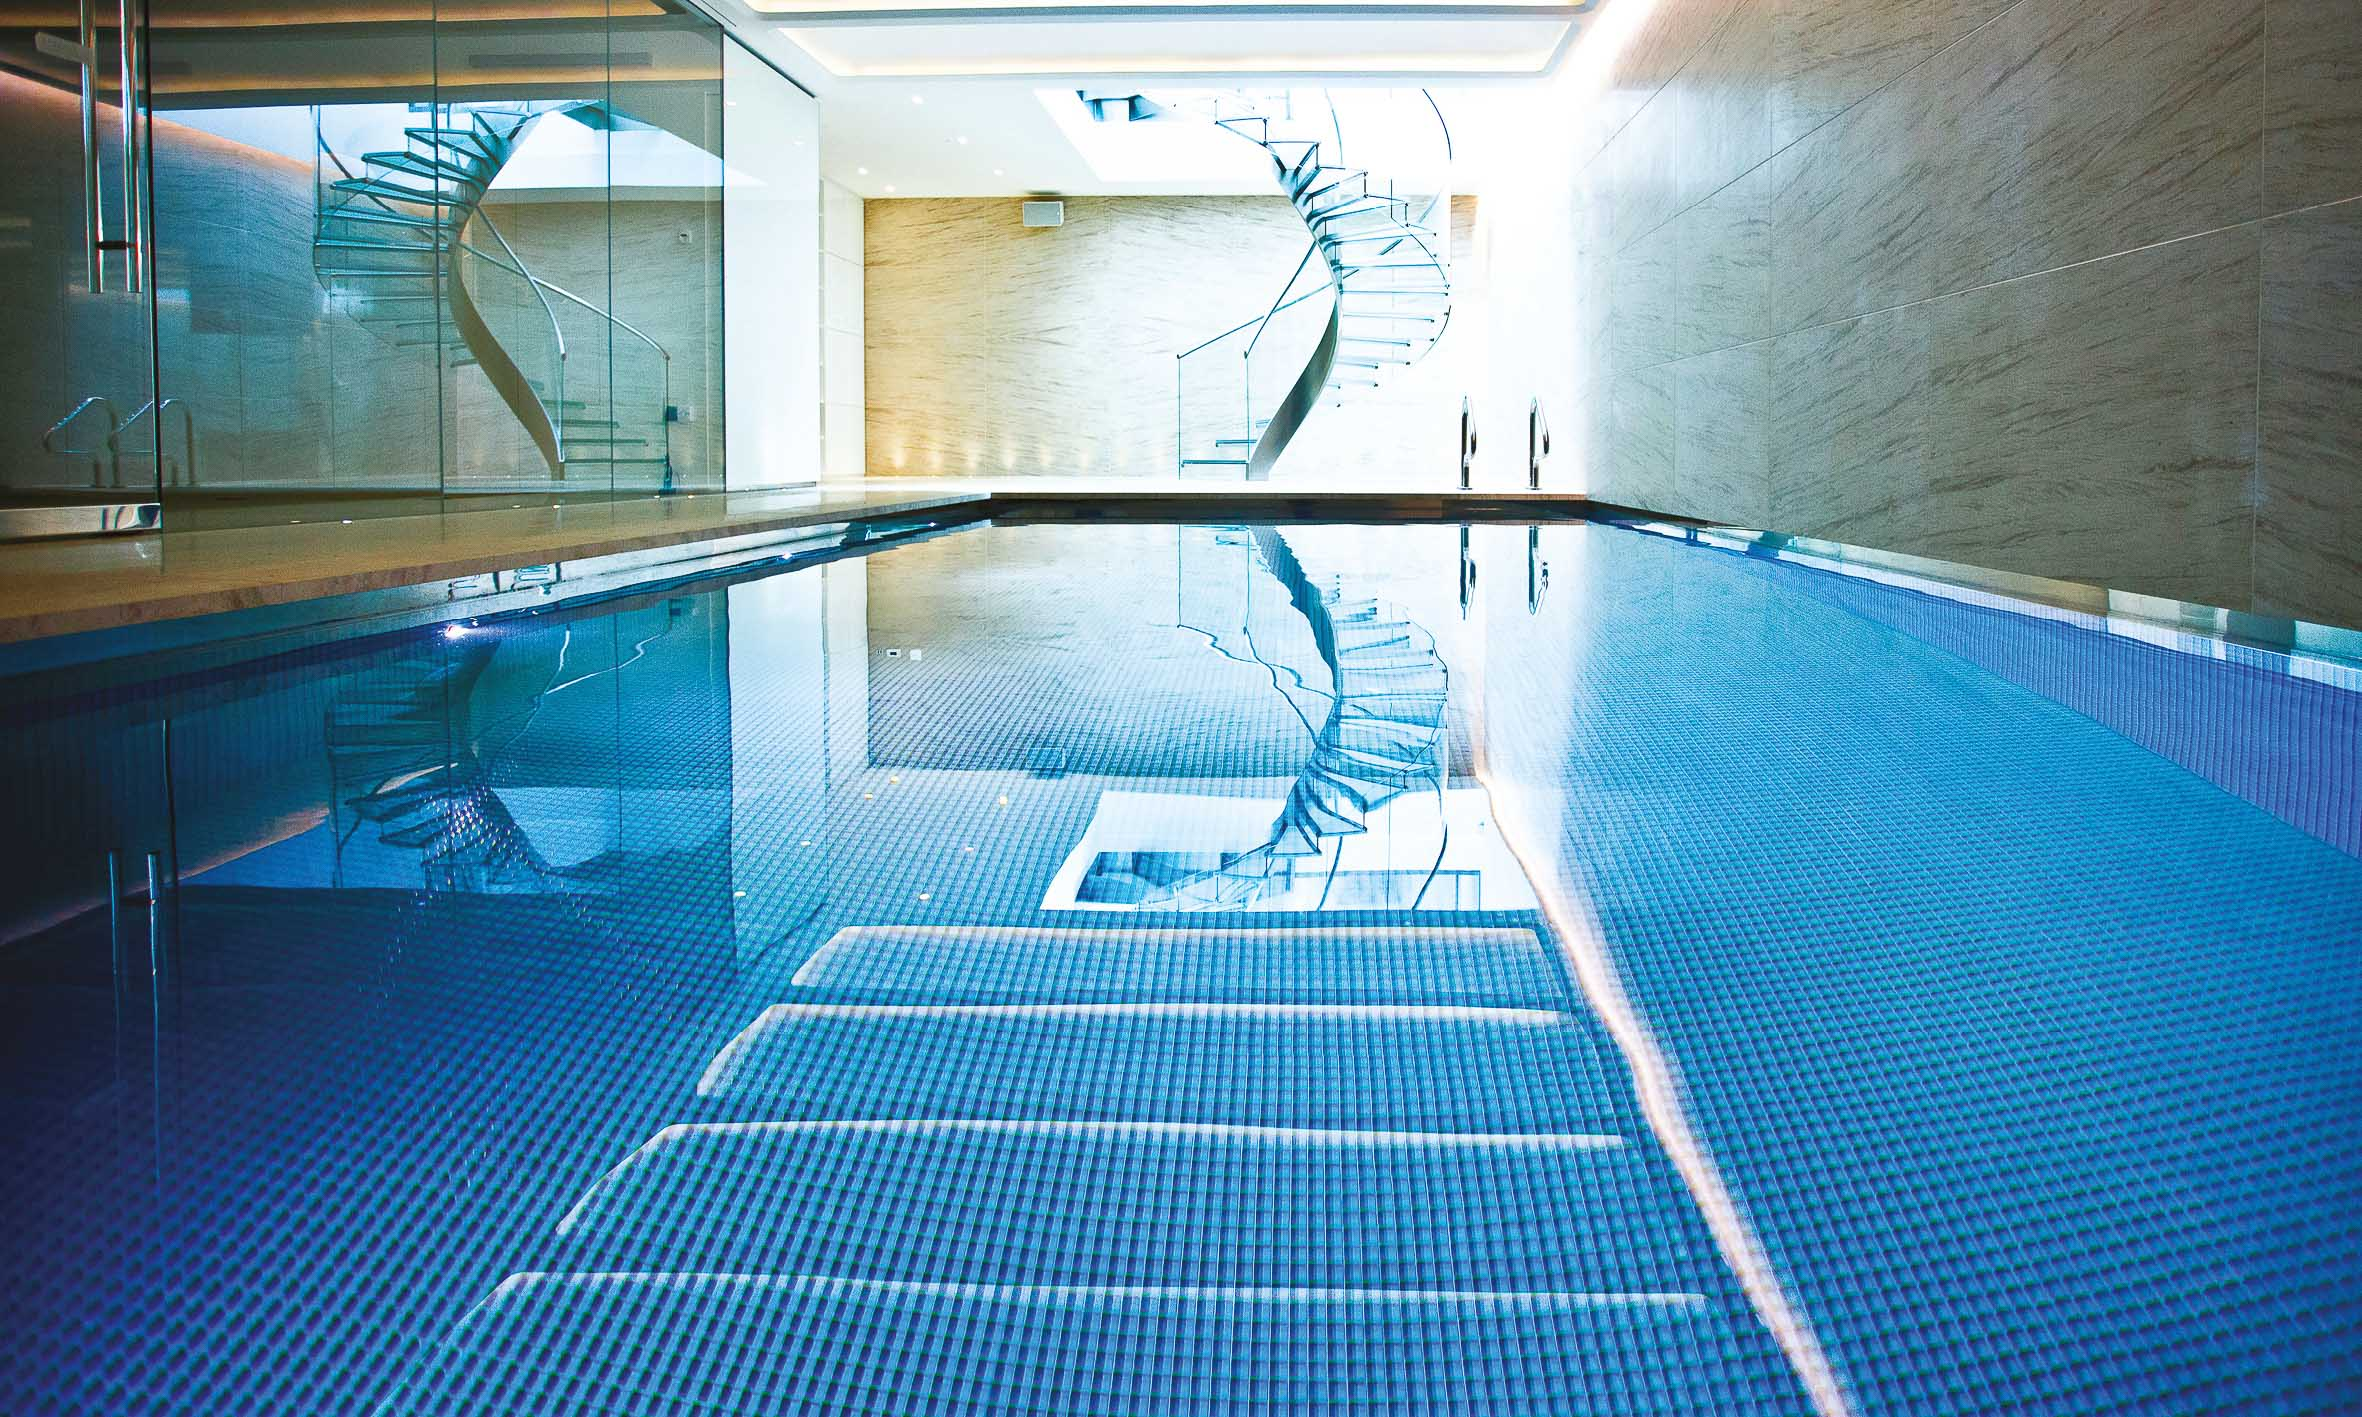 The luxary basement swimming pool. Feature spiral staircase at the end, a sauna and steam room on the left.